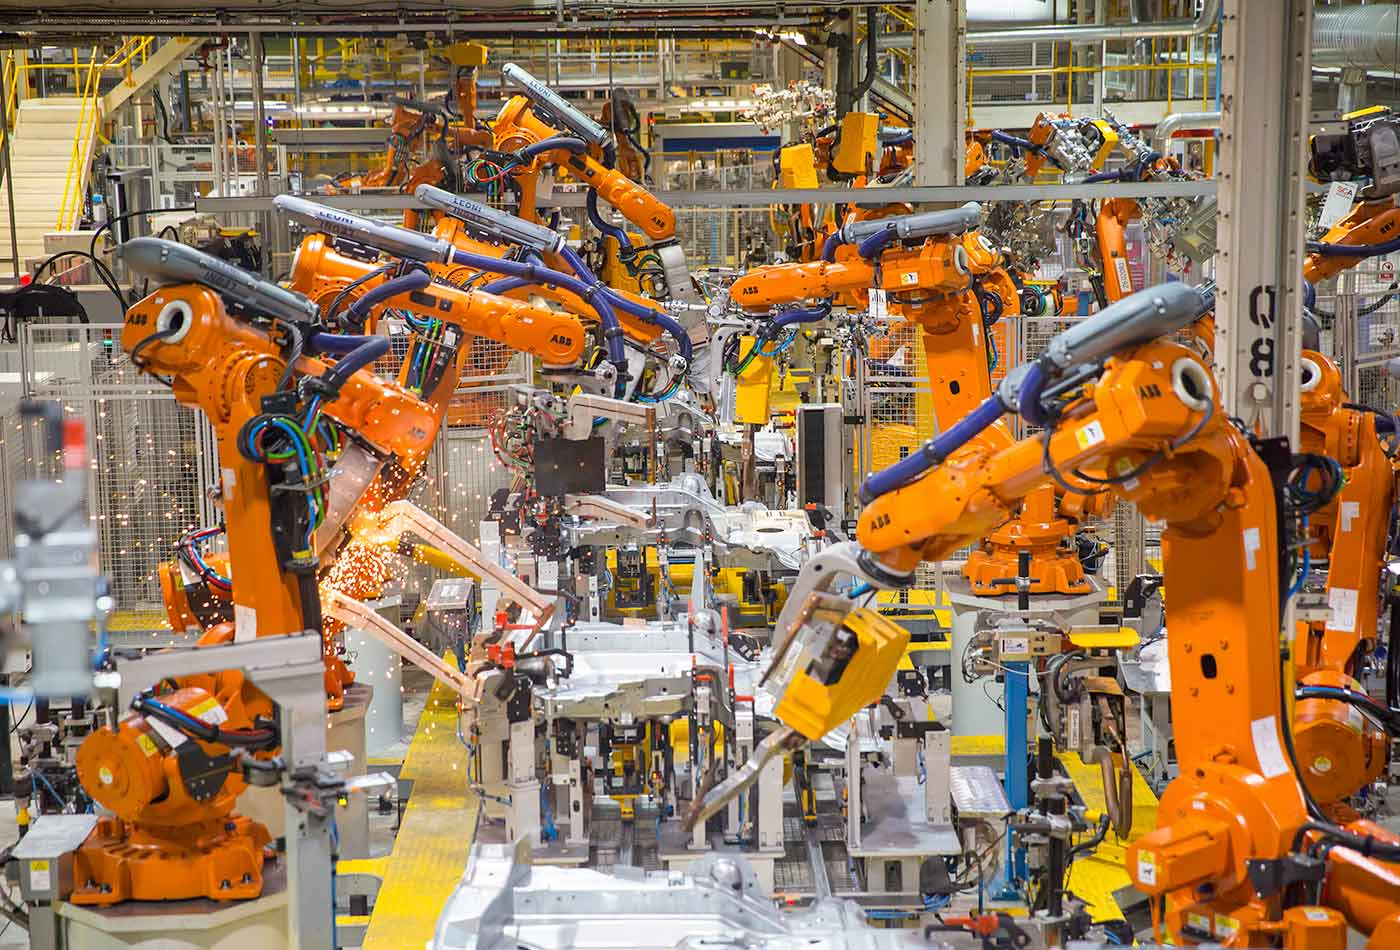 Land Rover's production line in Halewood, UK.